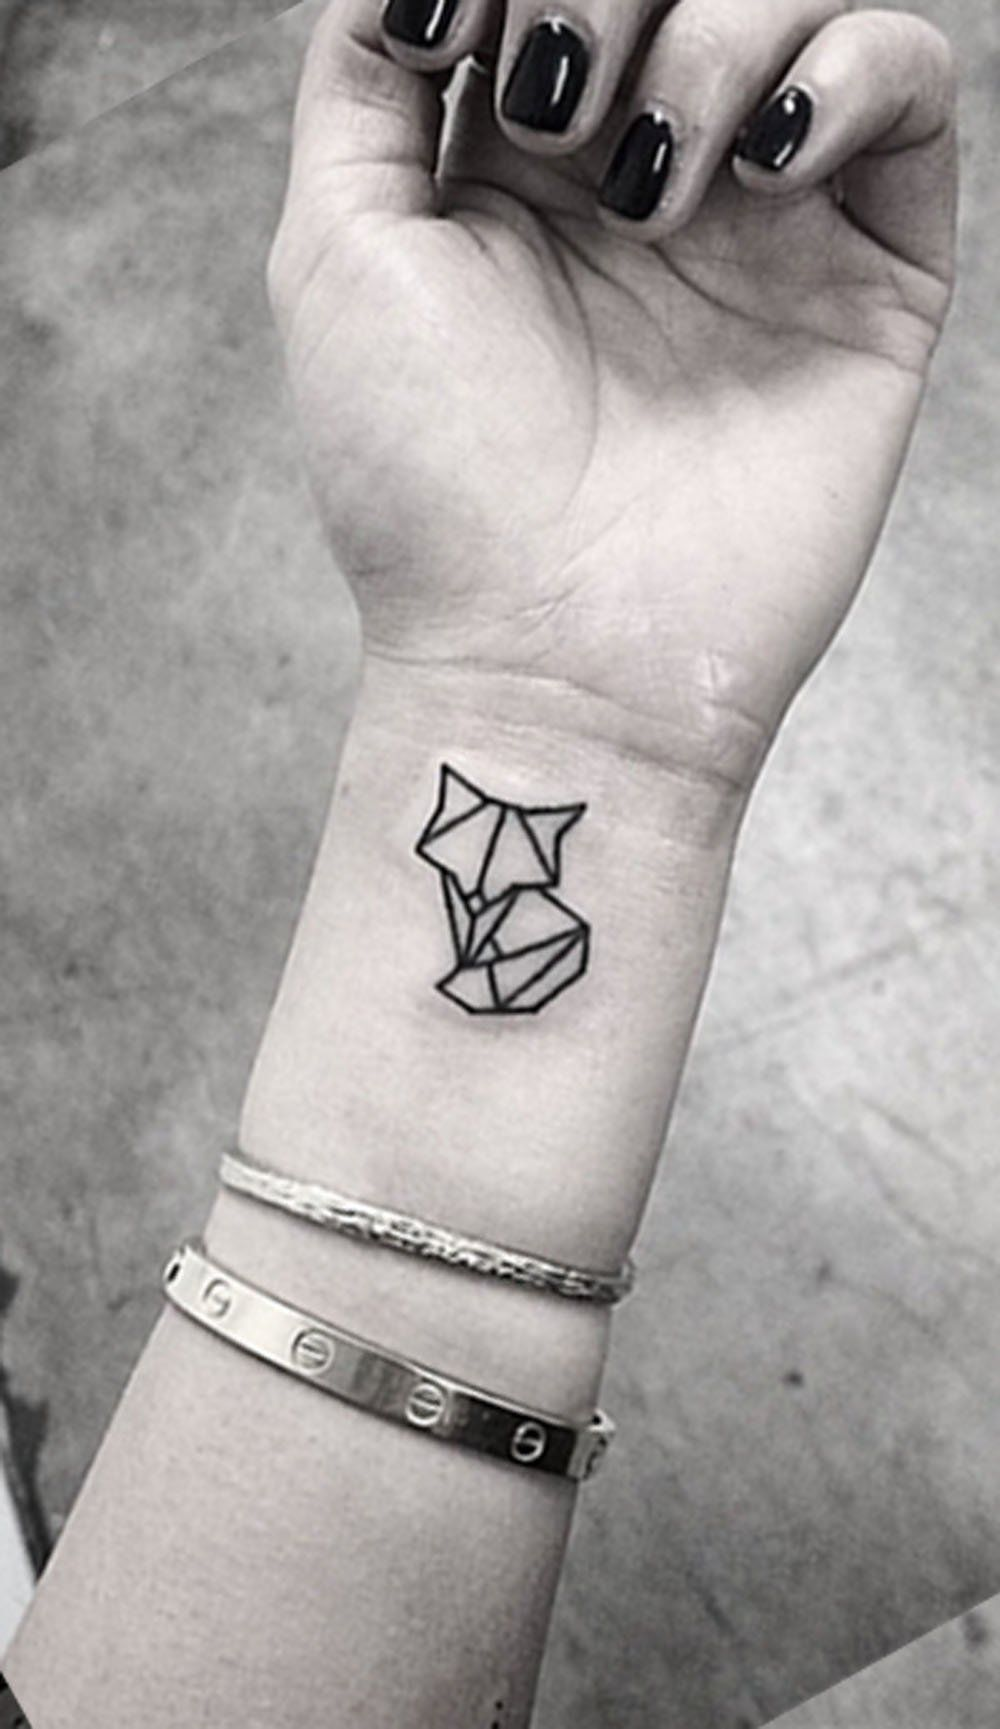 da6193f30 Small Minimal Geometric Wrist Arm Cat Fox Nature Tattoo Ideas for Women -  Ideas geométricas del